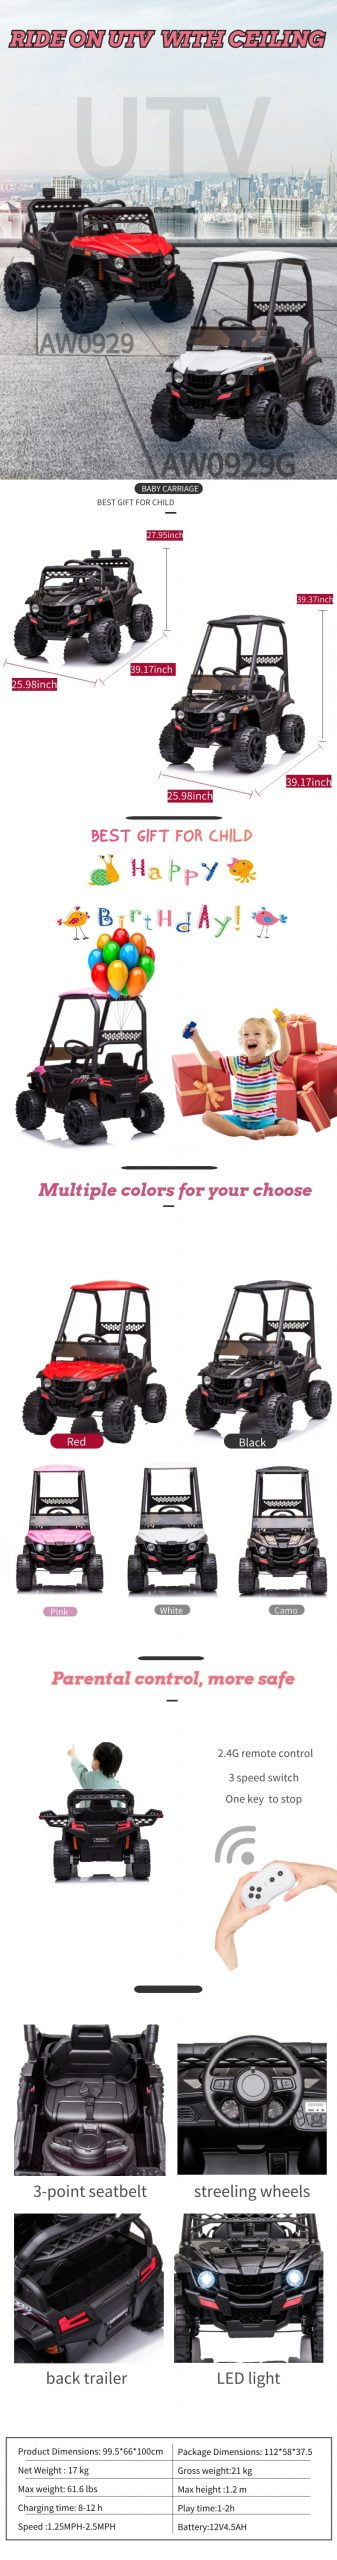 Parent Remote Control, Ride-On UTV with ceiling